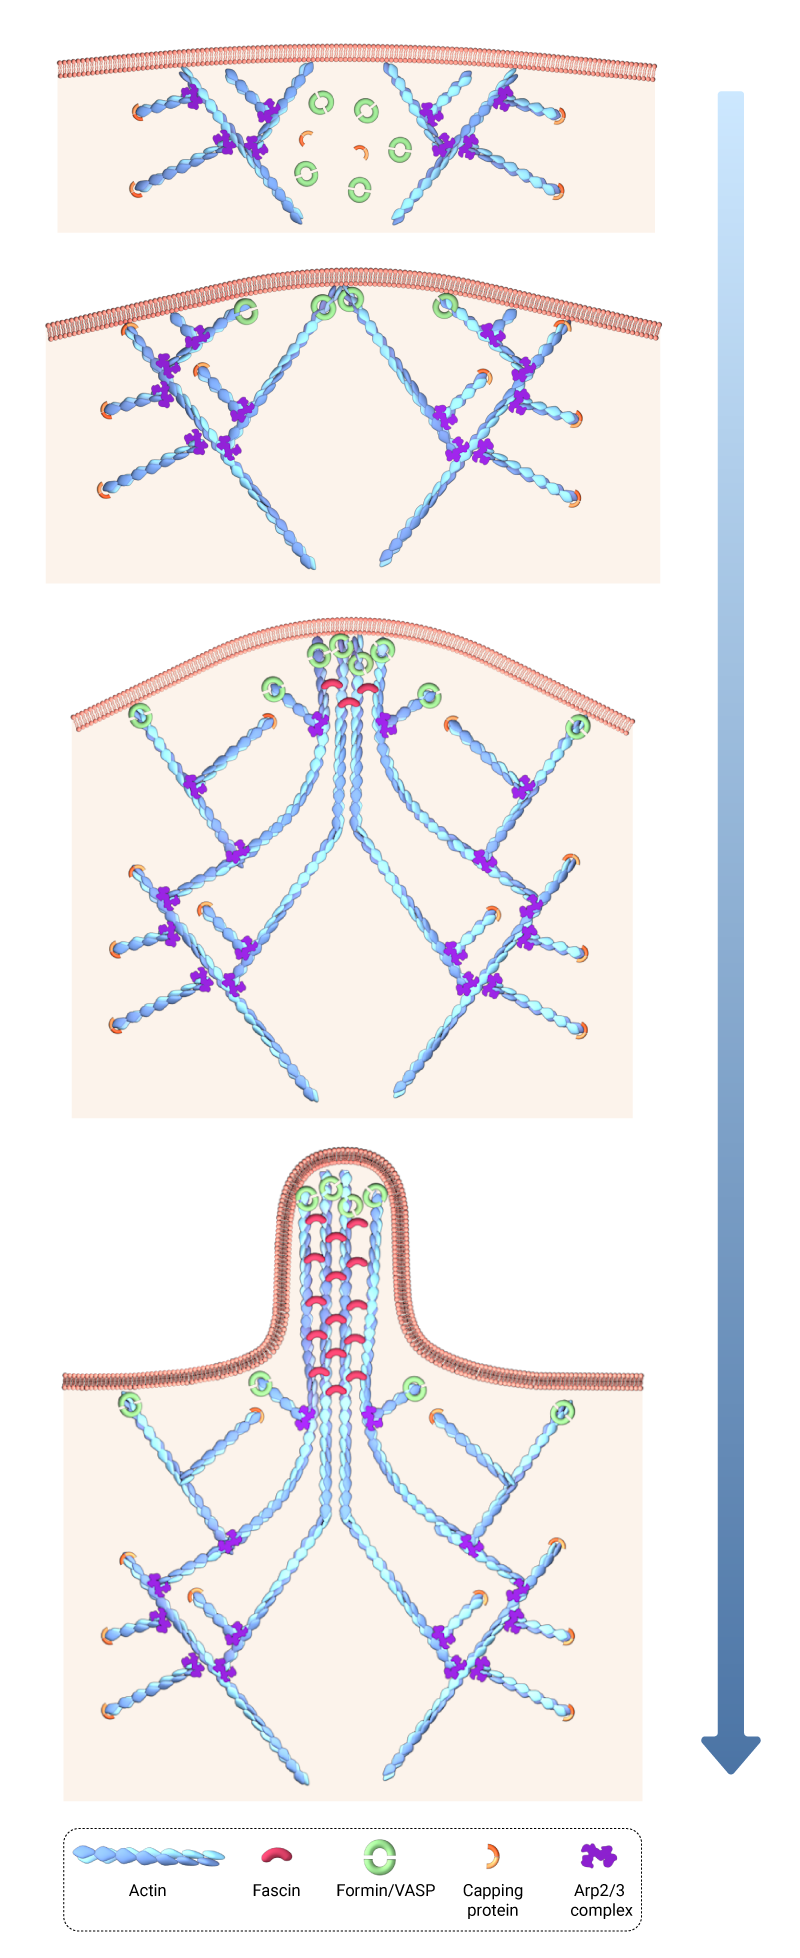 convergent-elongation-actin-nucleation